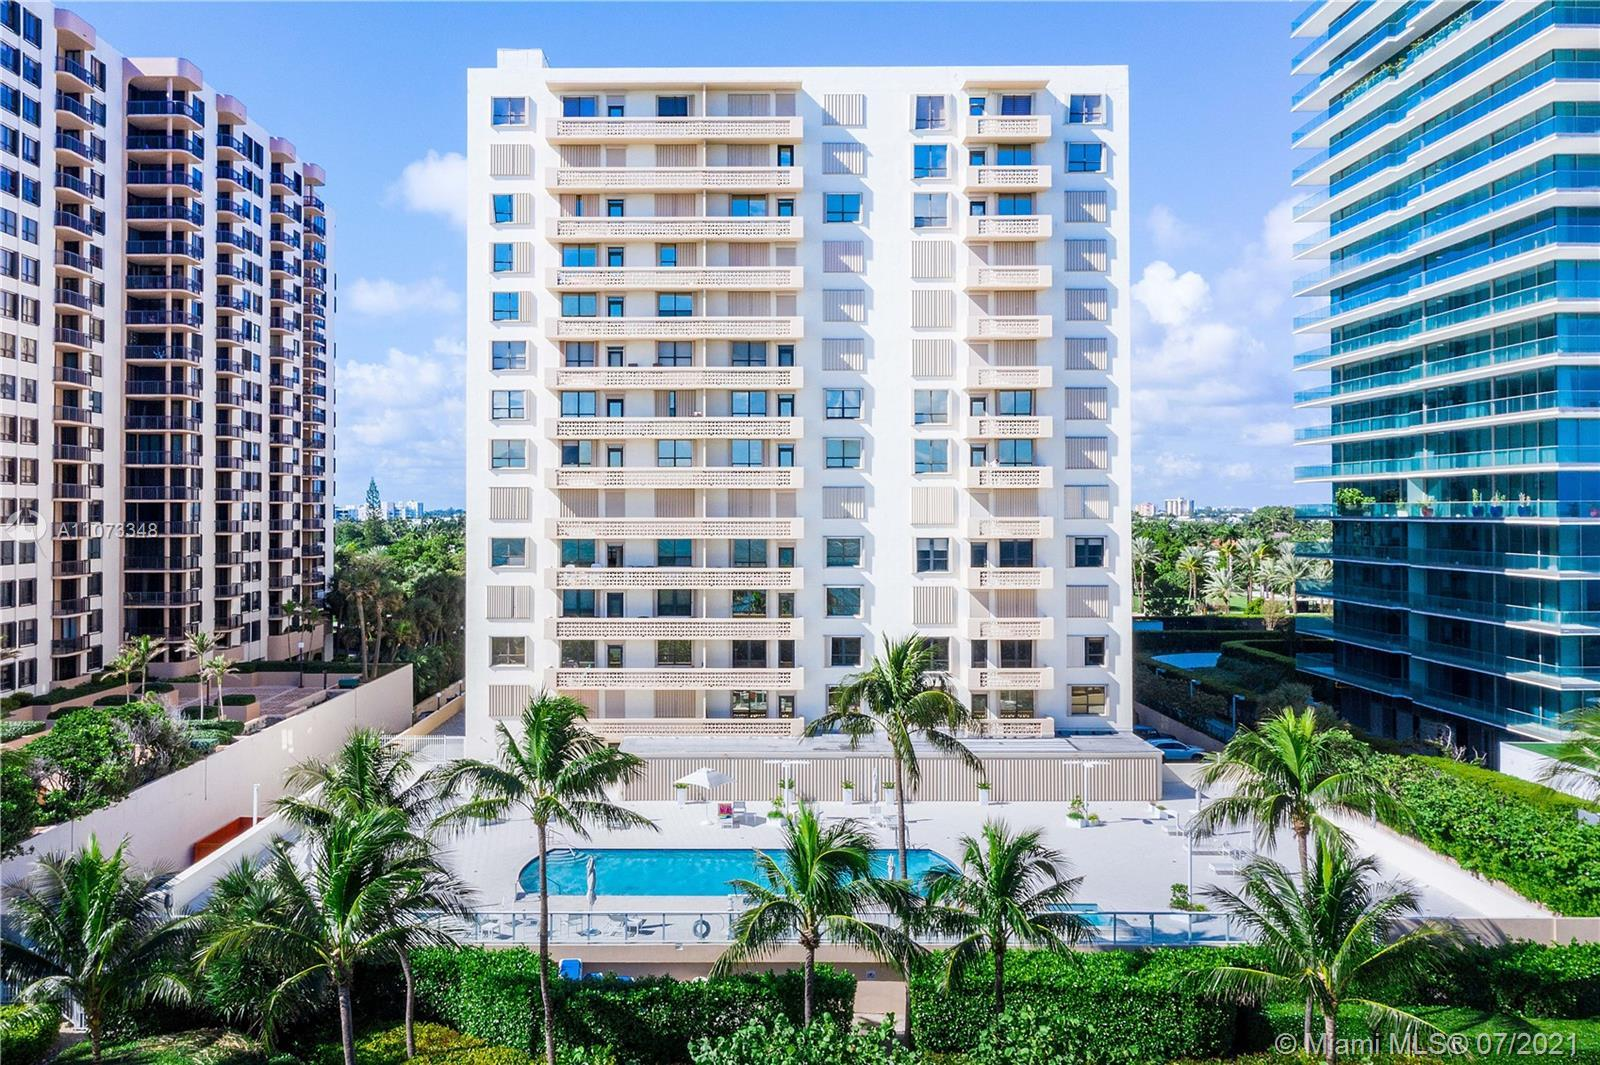 SPACIOUS 1 BEDROOM 1 1/2 BATHS. OCEAN VIEW. INCLUDES CABLE AND INTERNET AND VALET PARKING. VERY NICE